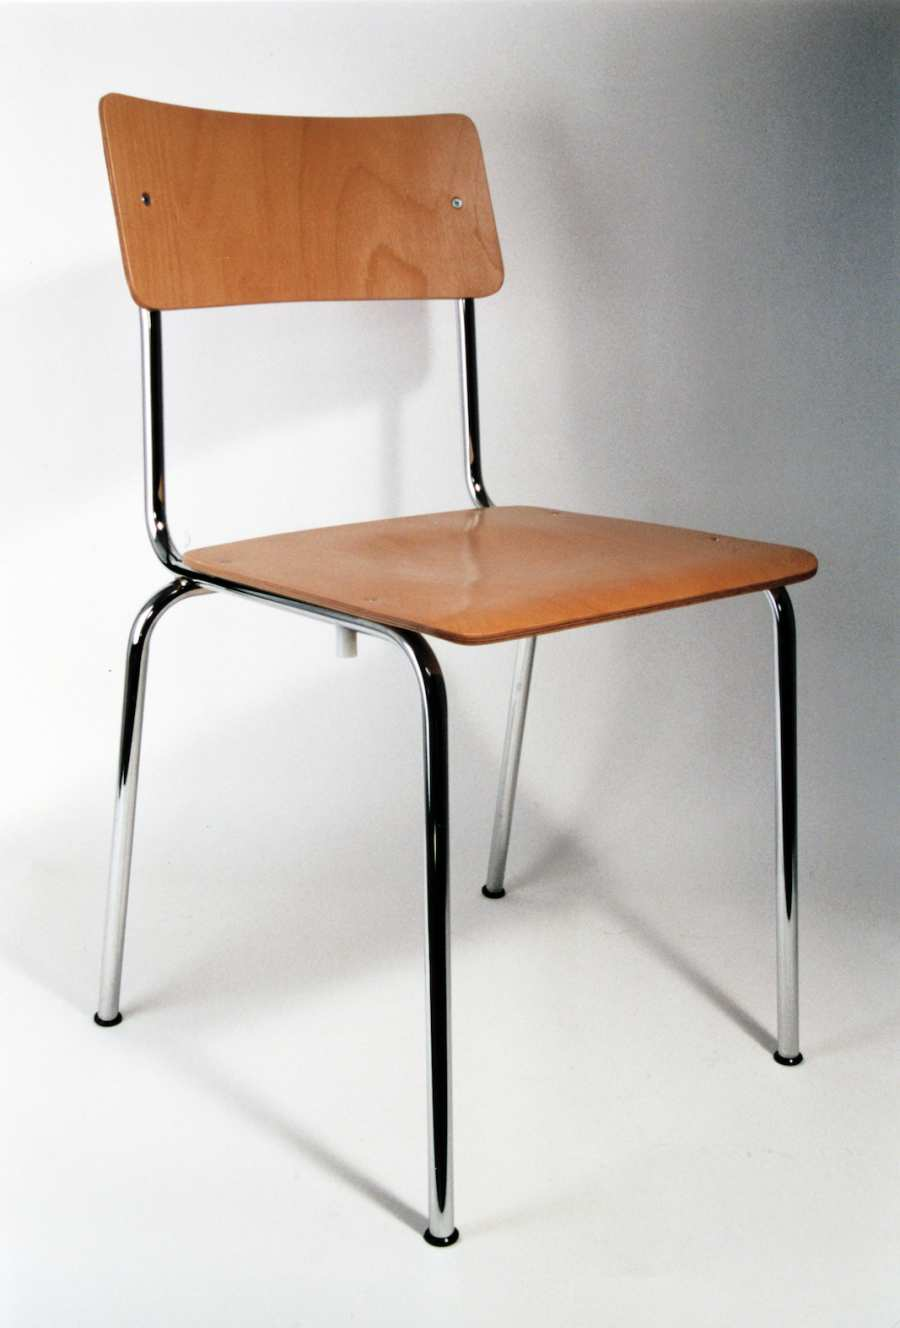 Stacking chair Stendal COMEBACK made timber and black metal frame